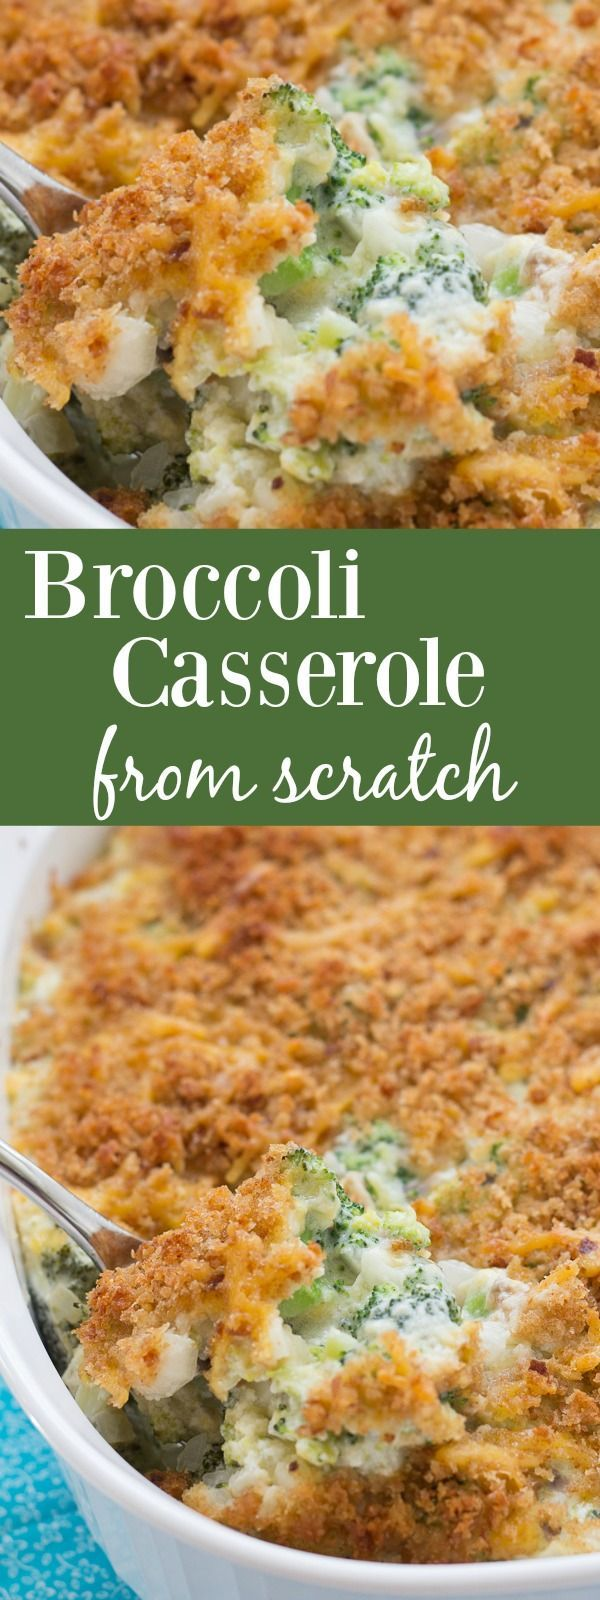 Cheesy, creamy broccoli casserole with a cheesy breadcrumb topping. This is our favorite holiday side dish! Completely from scratch. kristineskitchenblog.com